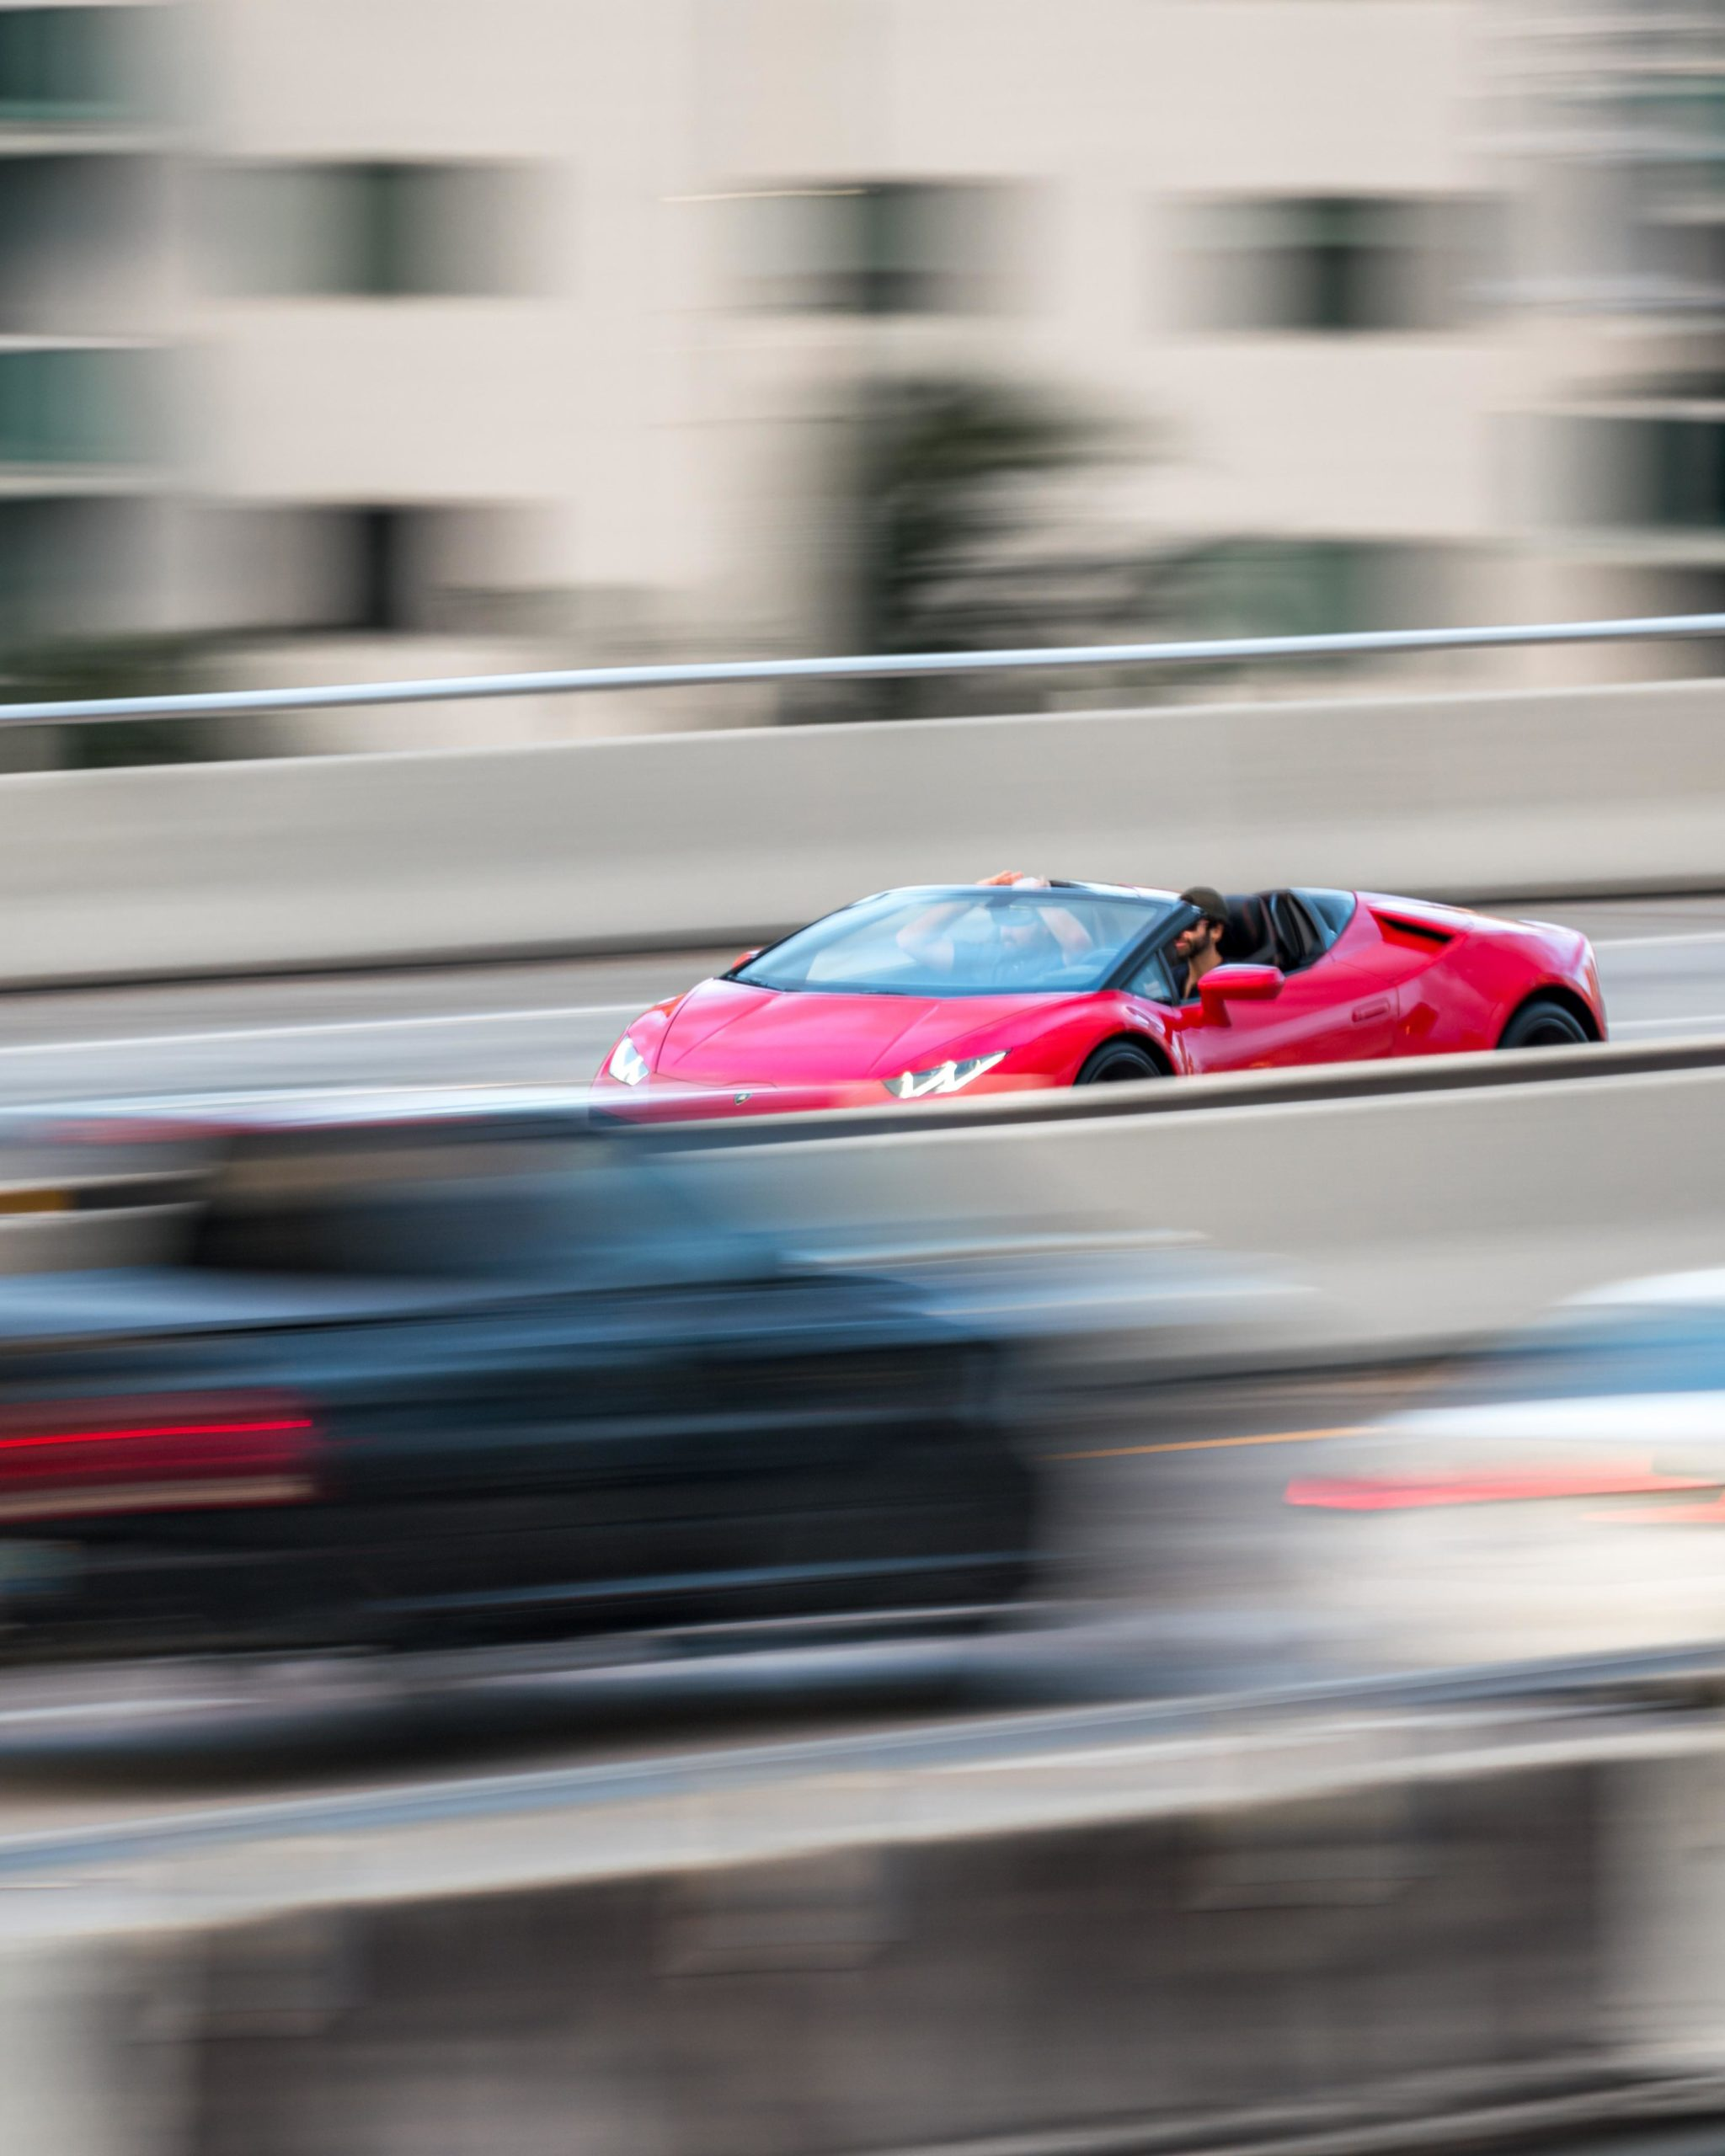 Causeway Cruising – Lamborghini Hurracan Spyder – Miami Beach, FL [Sony a7r3 – FE 100-400mm – iso 50 – 400 mm – f / 5.6 – 1/20 sec]